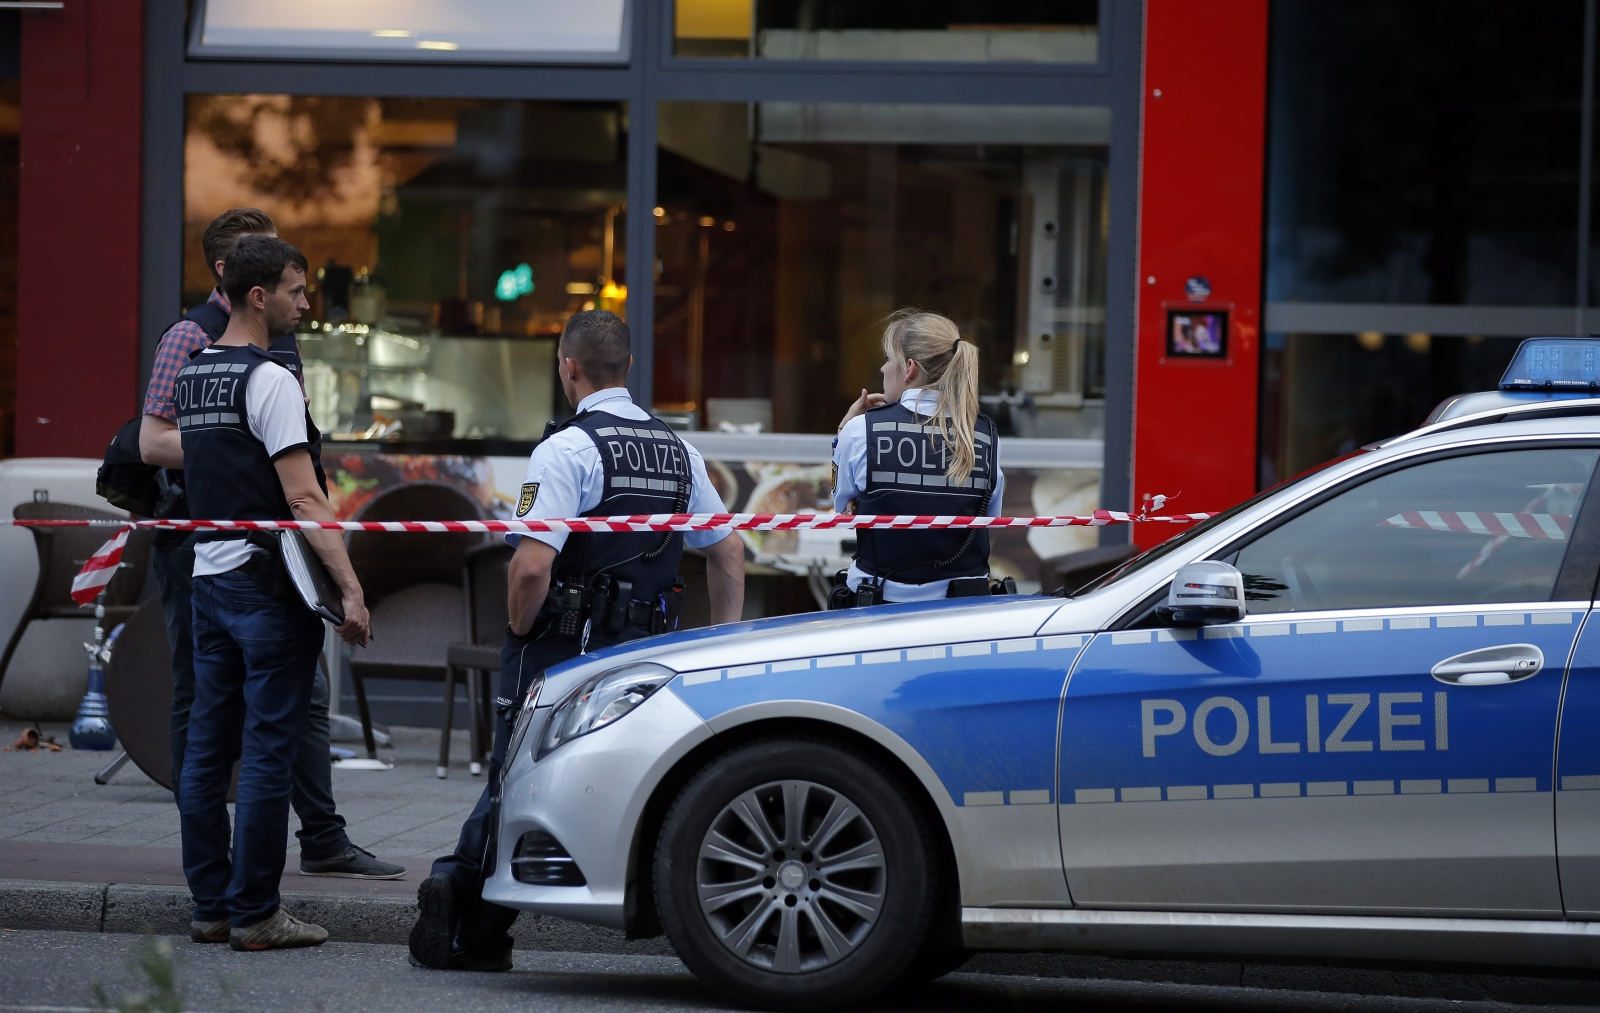 Man kills woman with machete in Germany; arrested